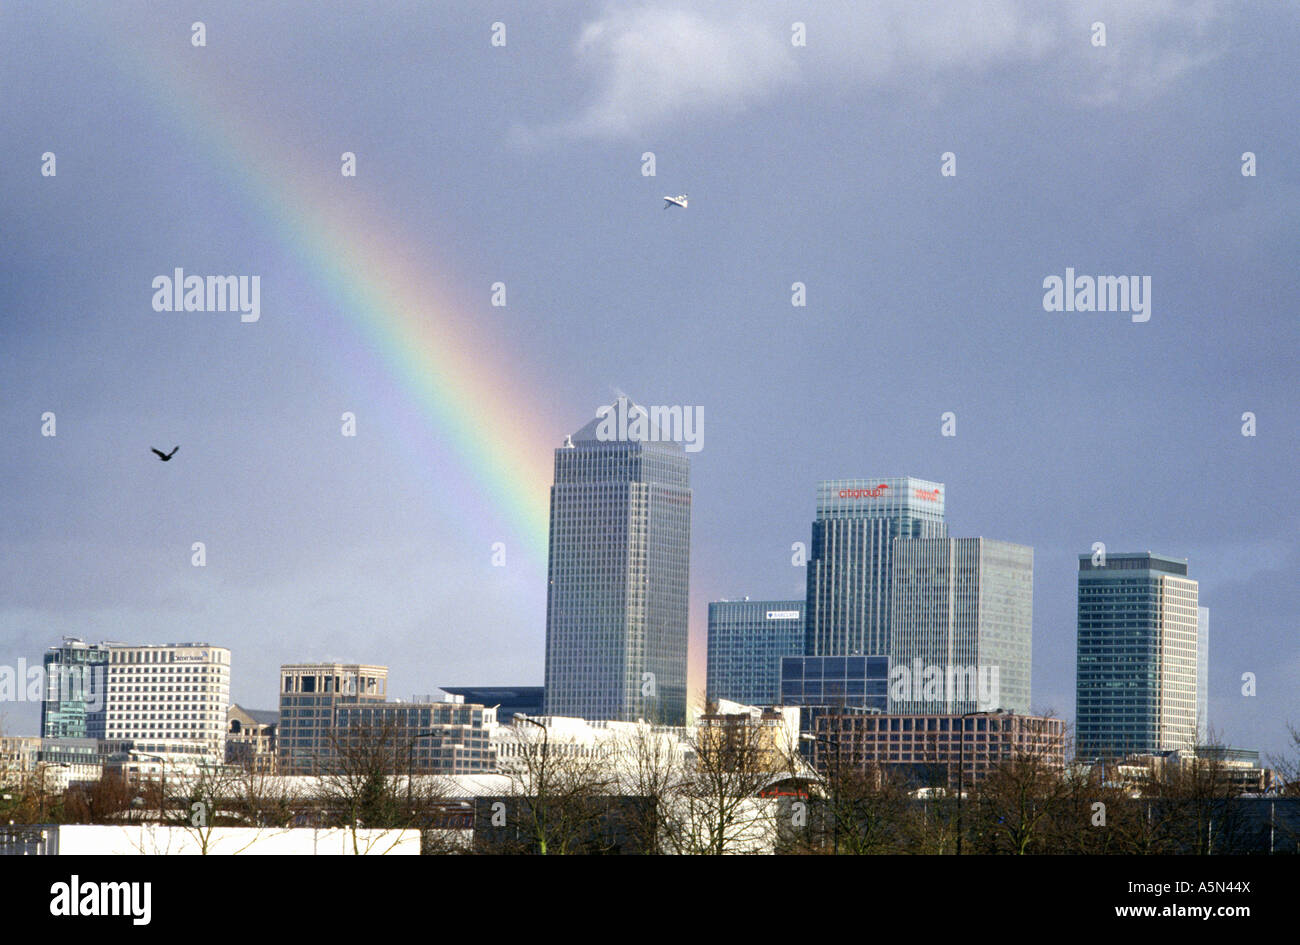 canary wharf with a rainbow going into it london uk - Stock Image